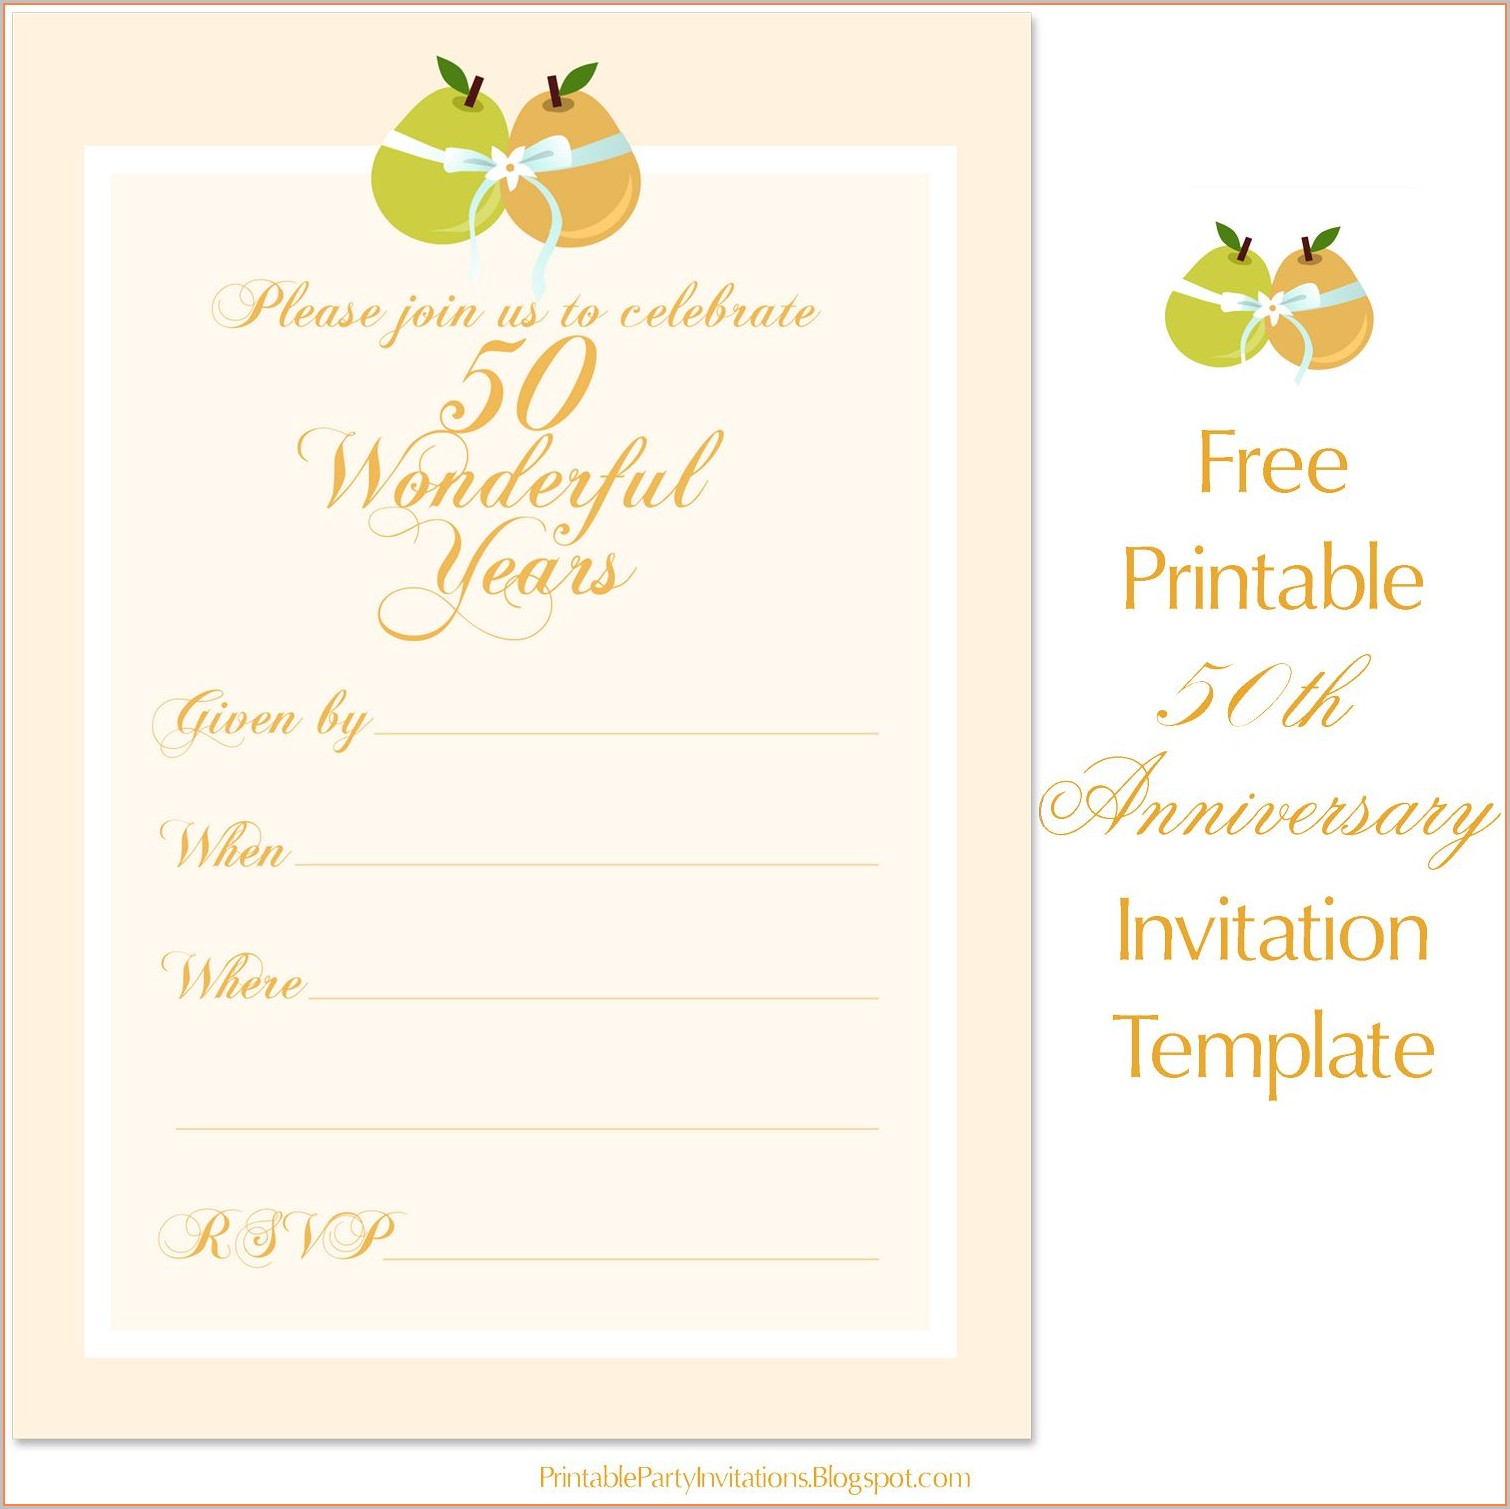 Printable 50th Anniversary Template